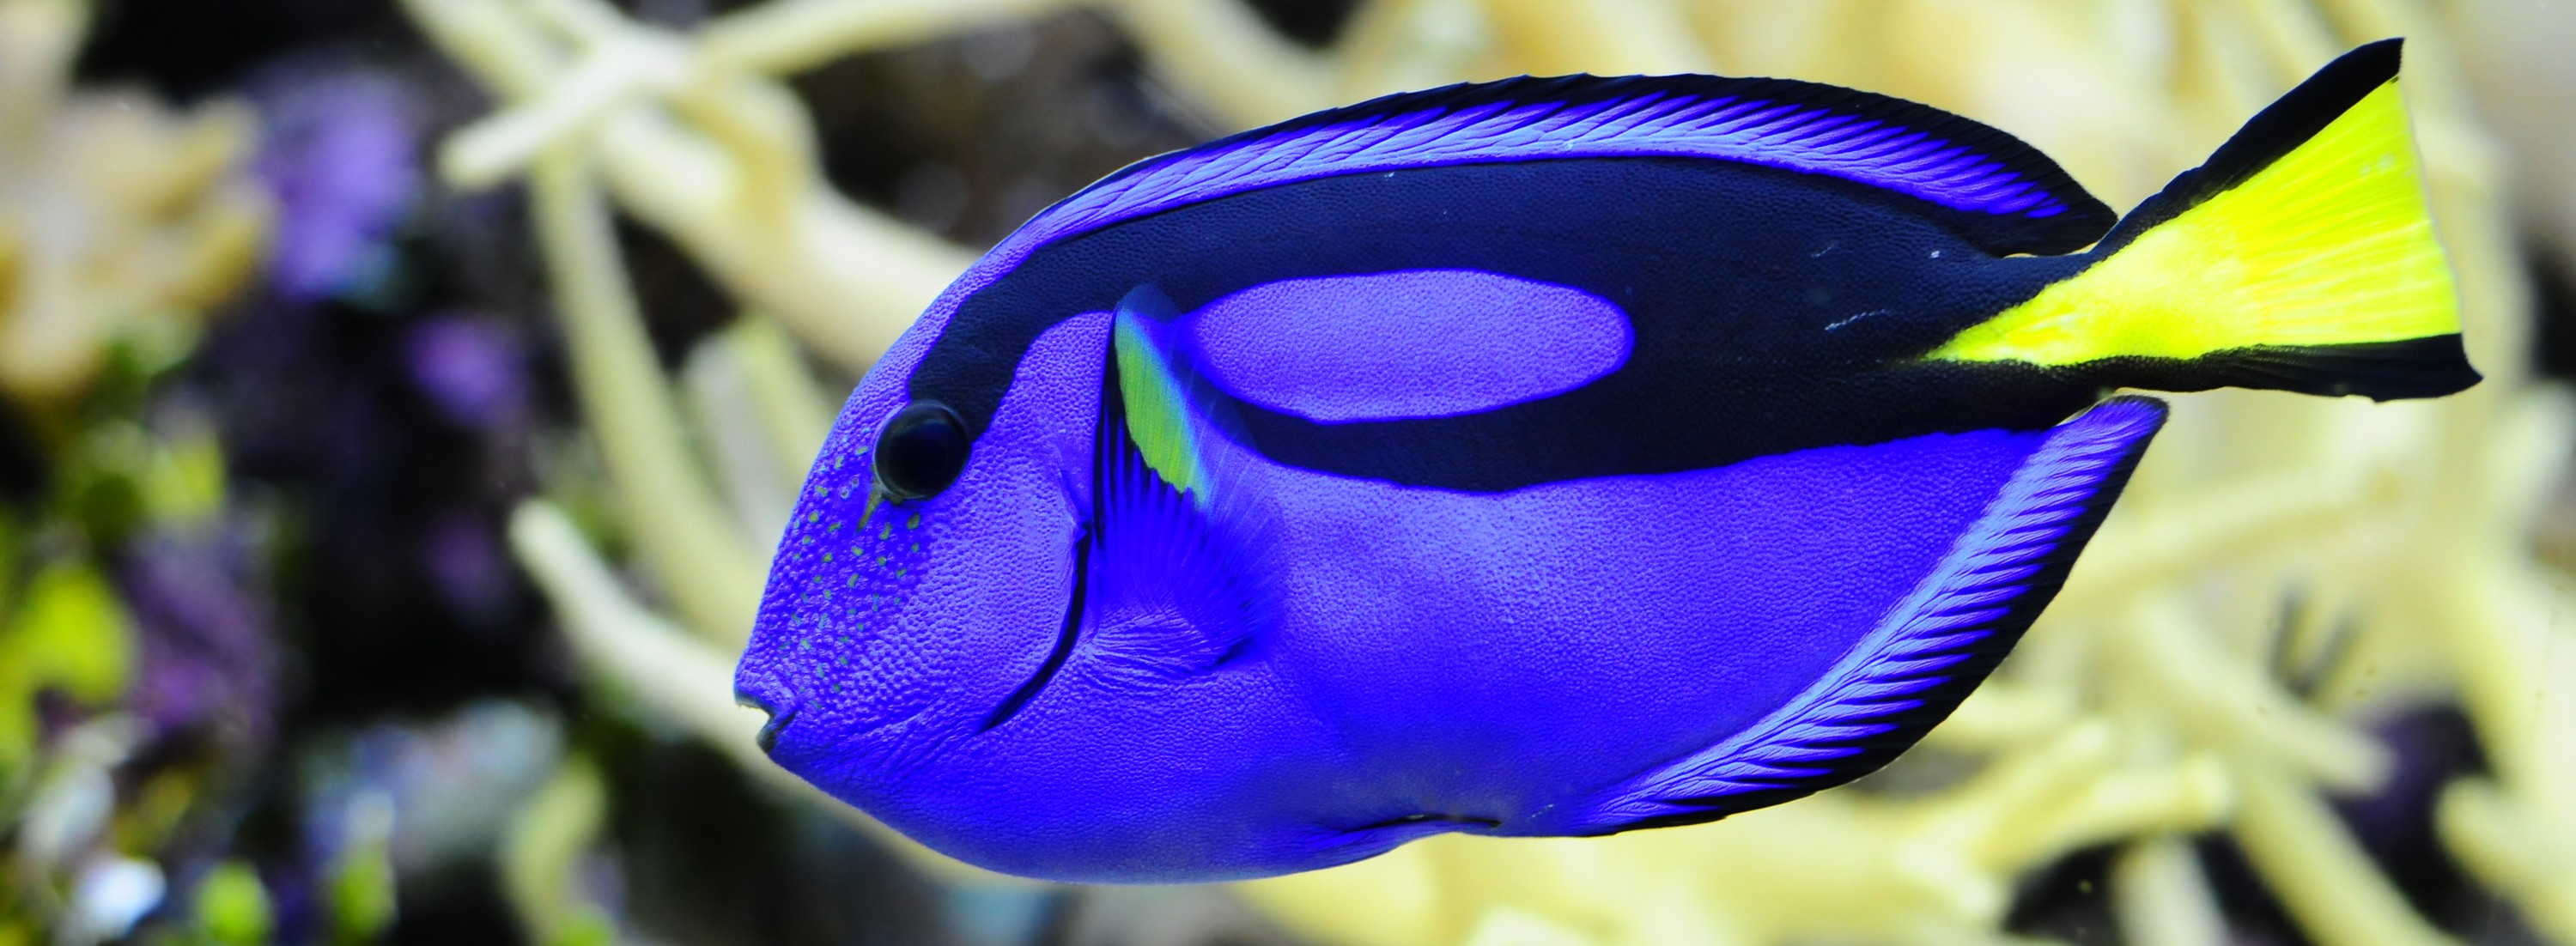 Finding Dory: Blue Tang Fact or Fiction